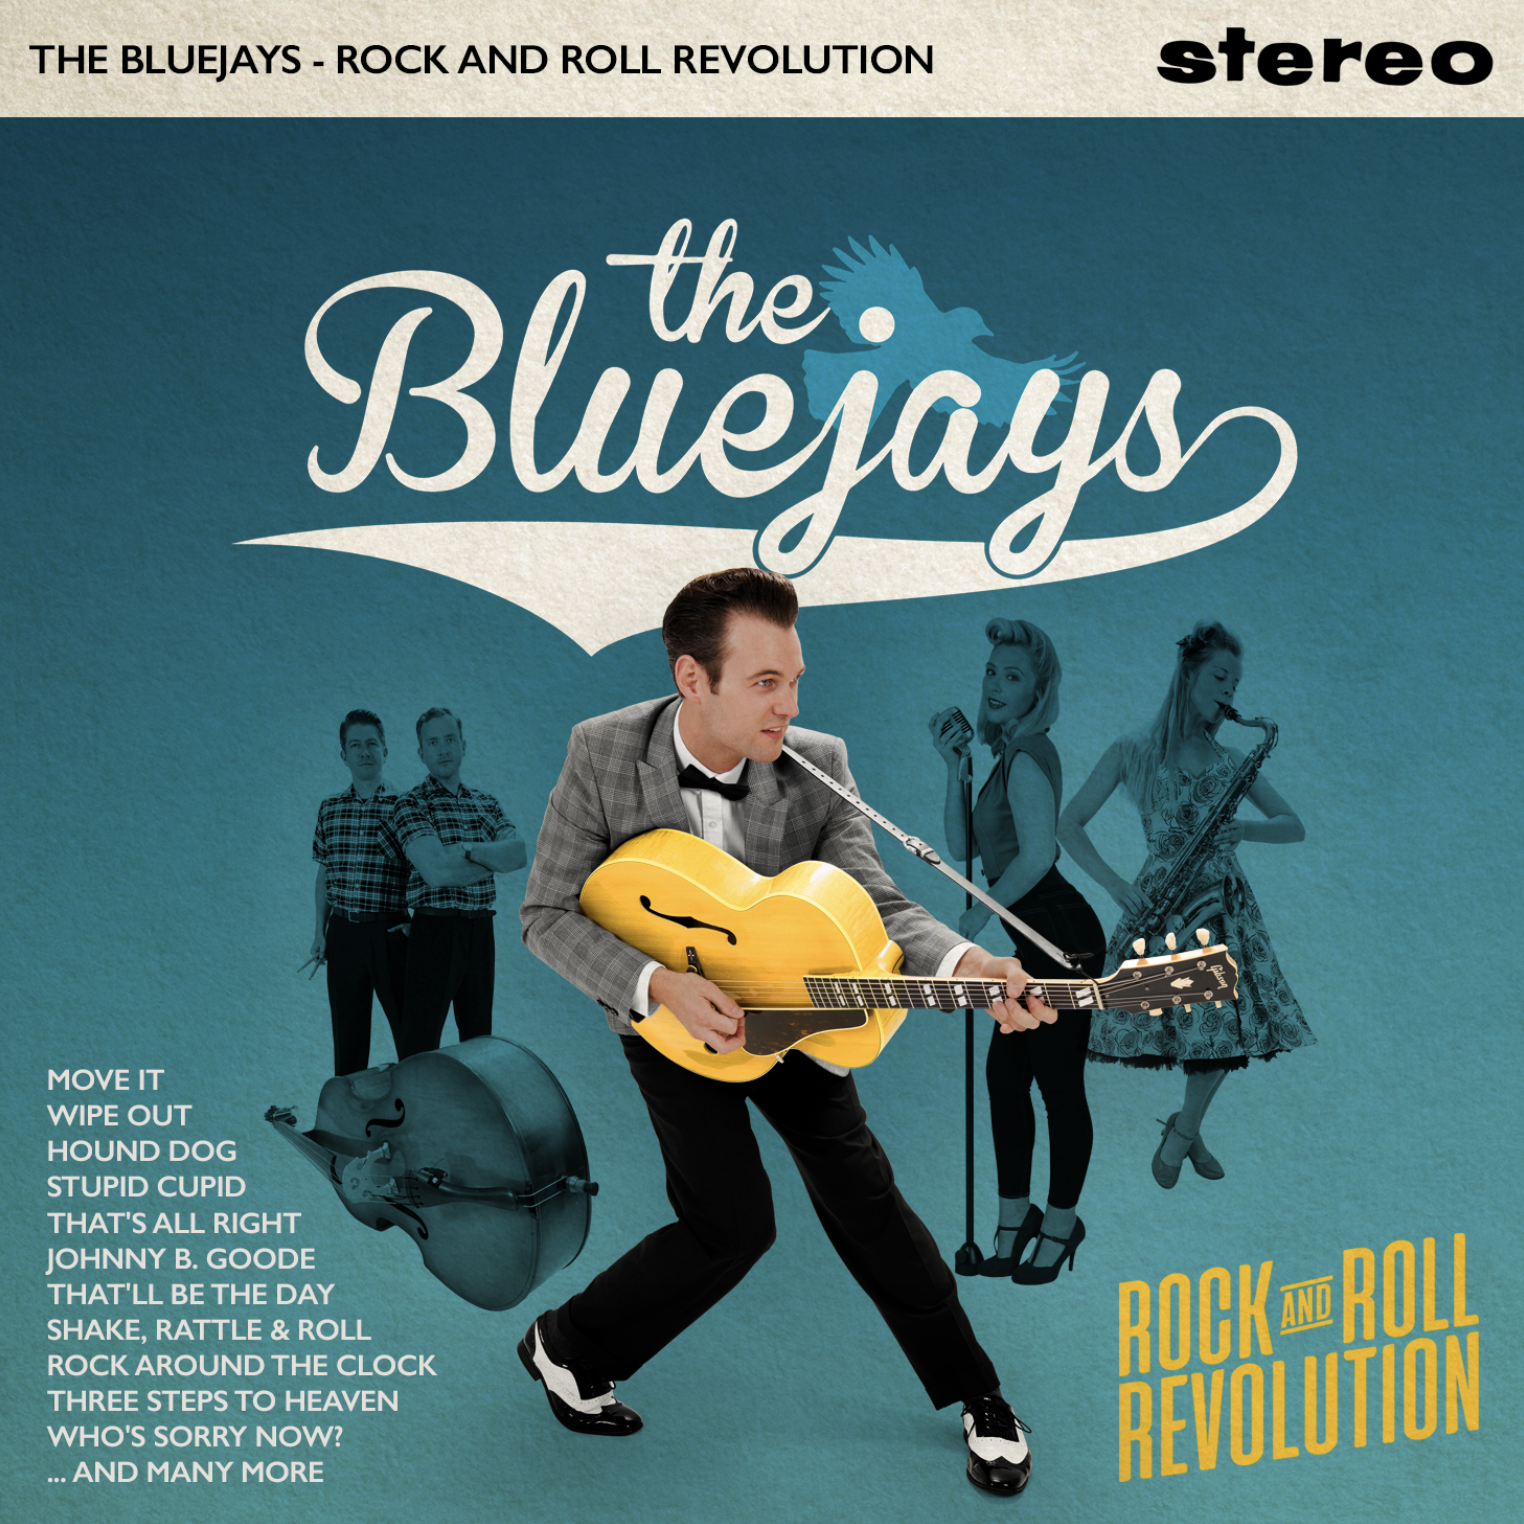 The Bluejays - Rock and Roll Revolution.  21-Track album available as CD/Download